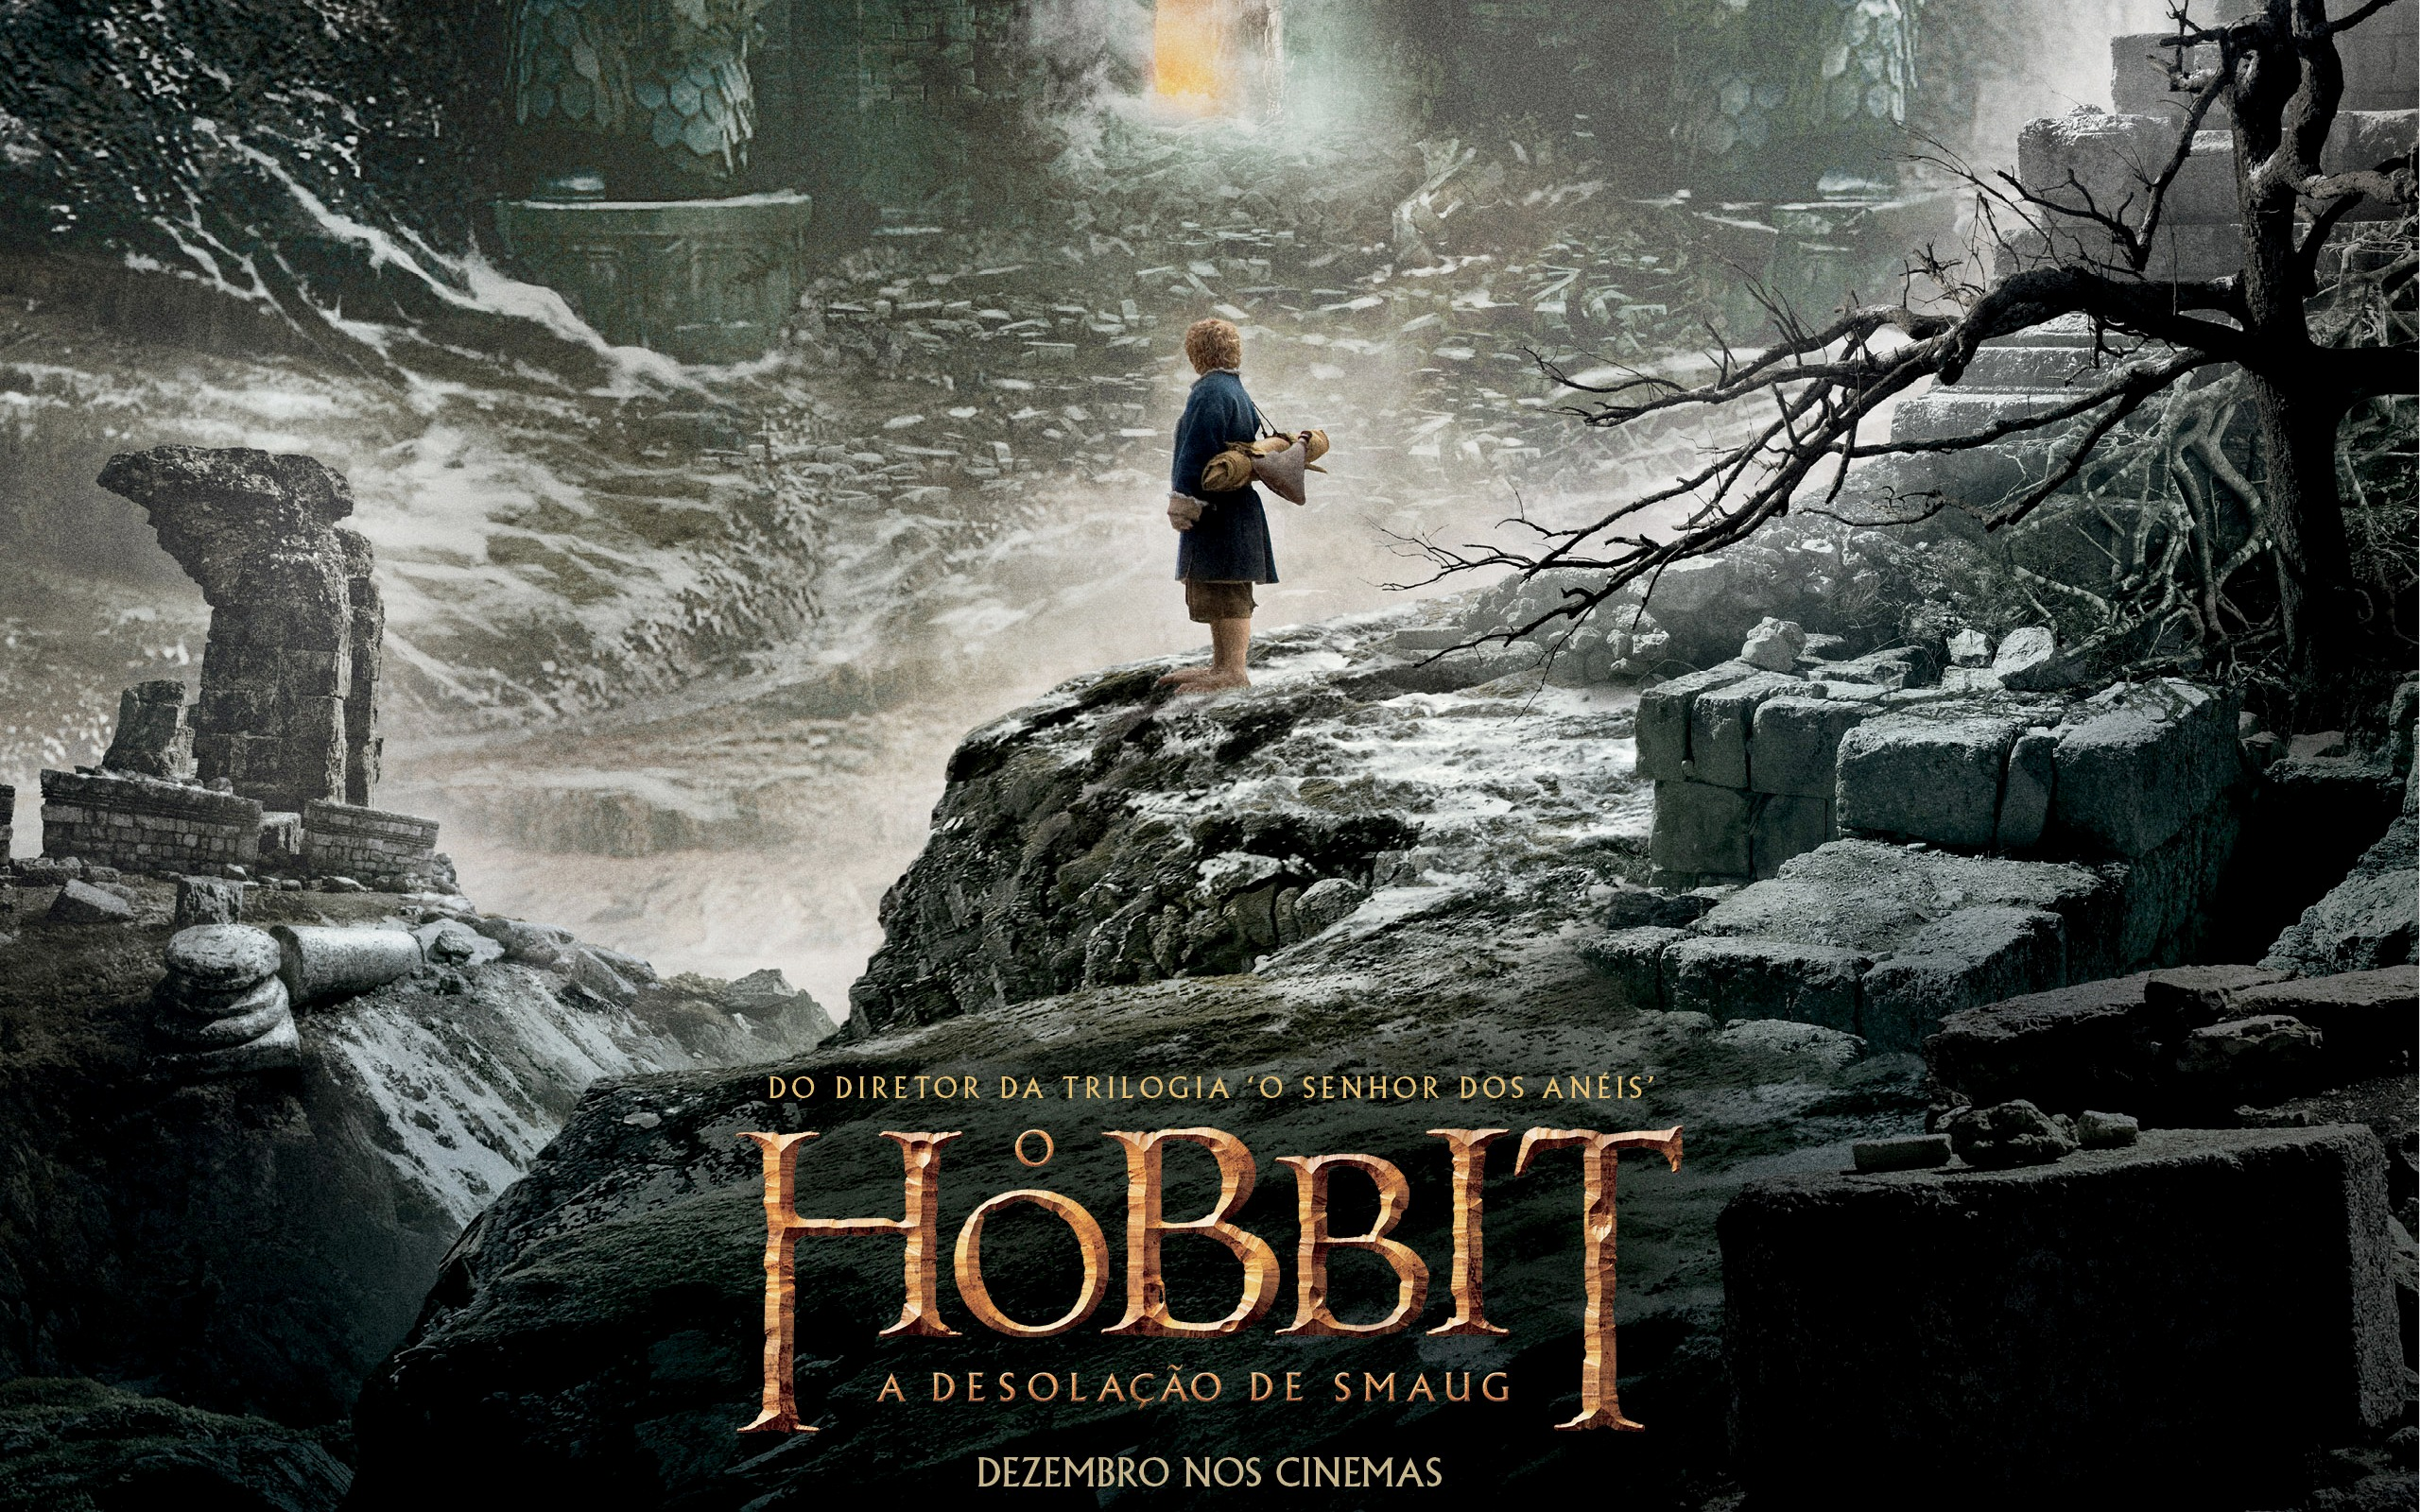 the hobbit: the desolation of smaug (2013) wallpapers - 2560x1600